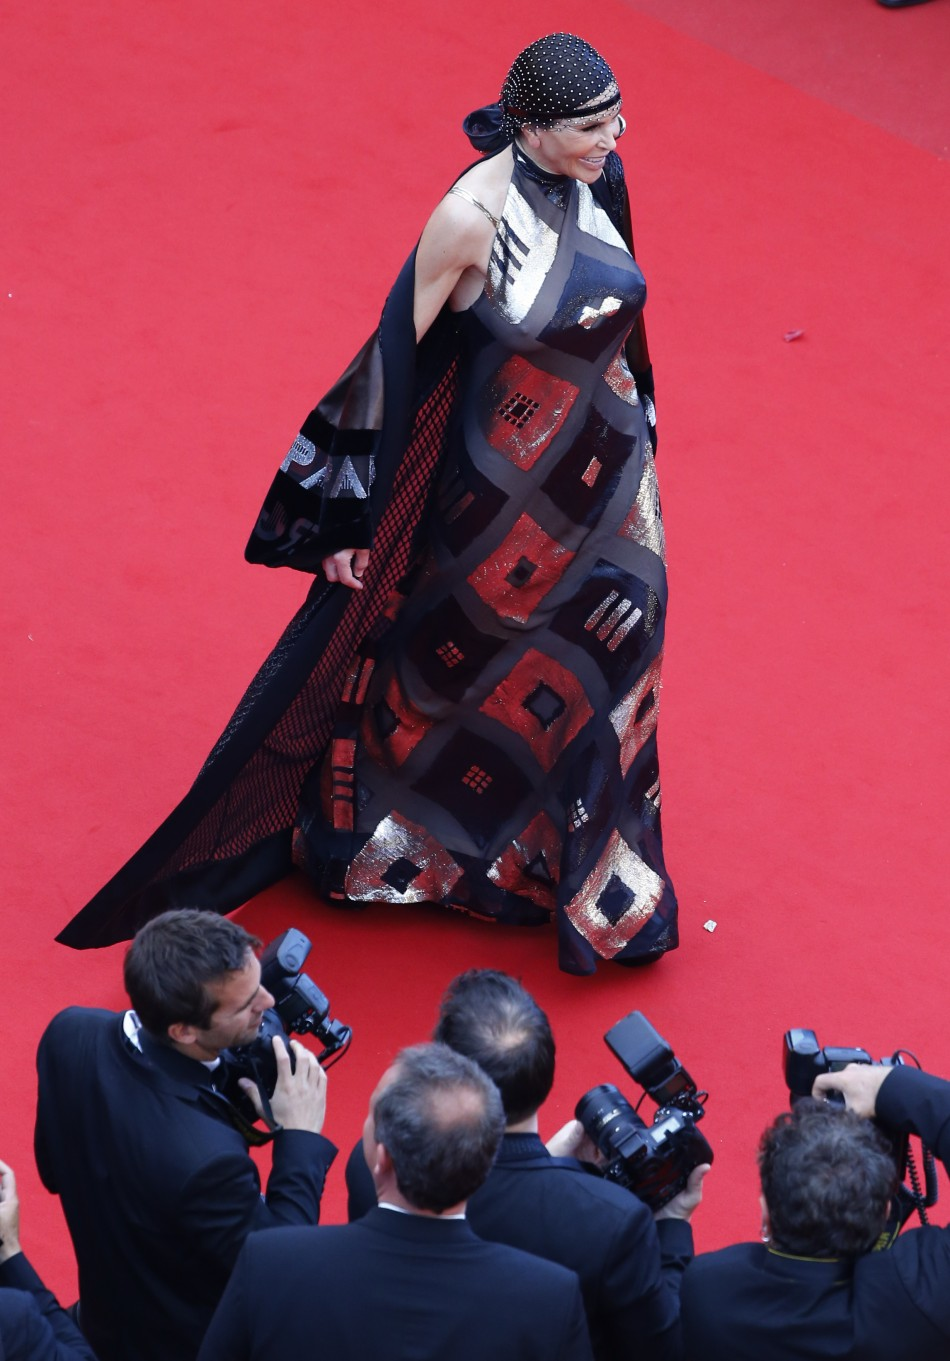 Lebanese businesswoman Mouna Ayoub poses on the red carpet as she arrives for the screening of the film Inside Llewyn Davis in competition during the 66th Cannes Film Festival in Cannes May 19, 2013.